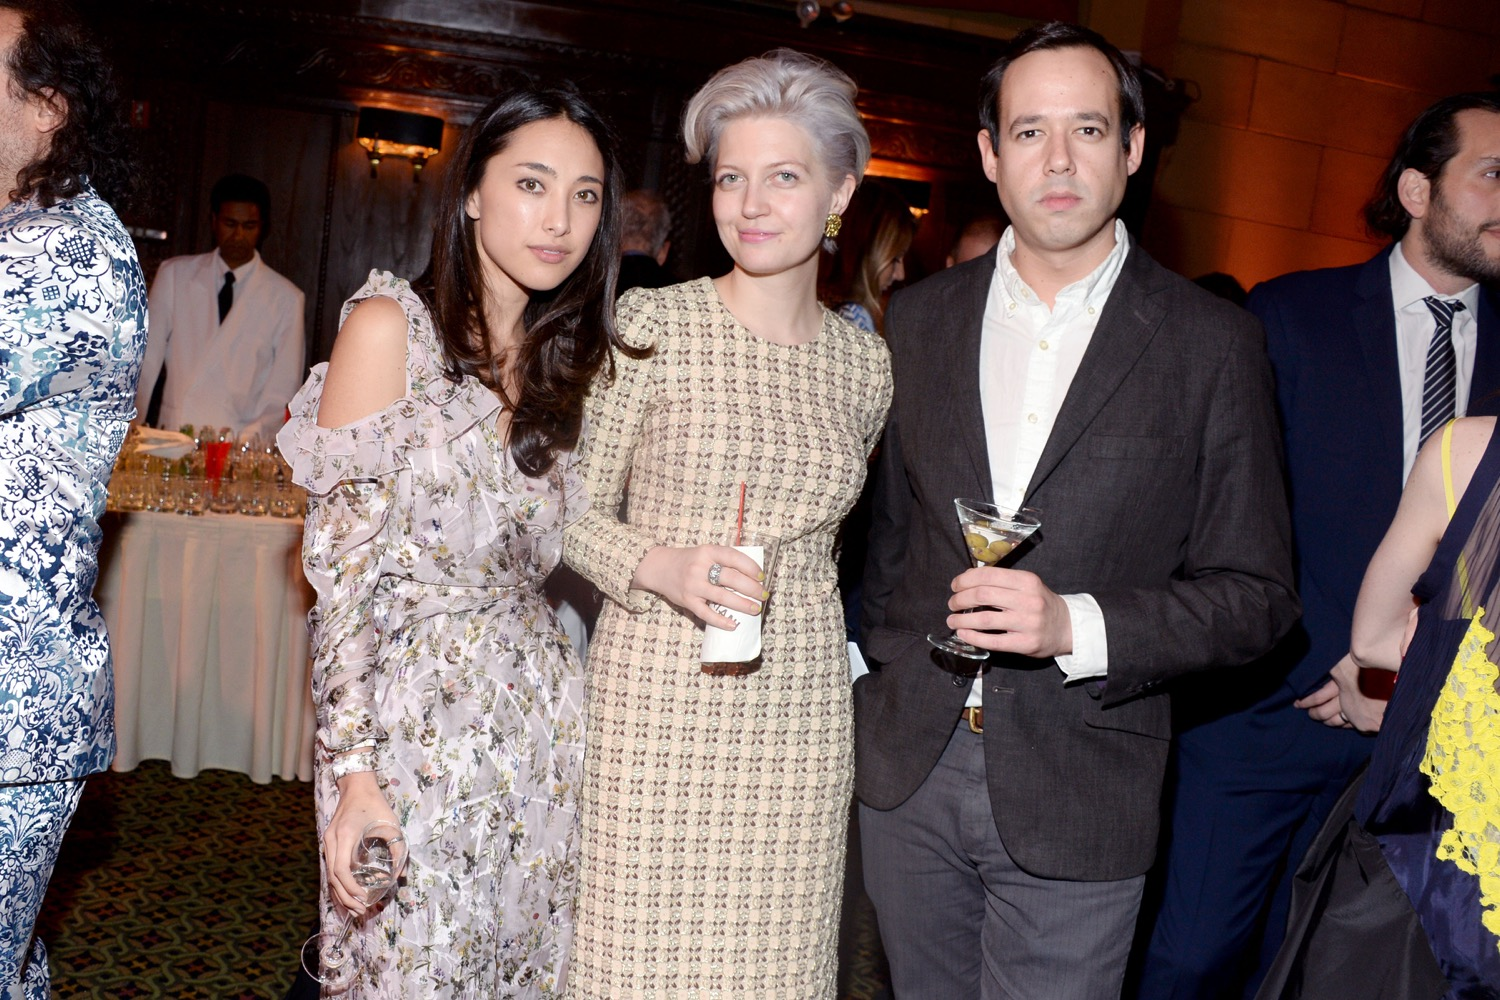 Alyssa Reeder, Rachel Tashjian, Nate Freeman== The Paris Review 2016 Spring Revel== Cipriani 42nd Street, NYC== April 5, 2016== ©Patrick McMullan== Photo - Clint Spaulding/PMC==